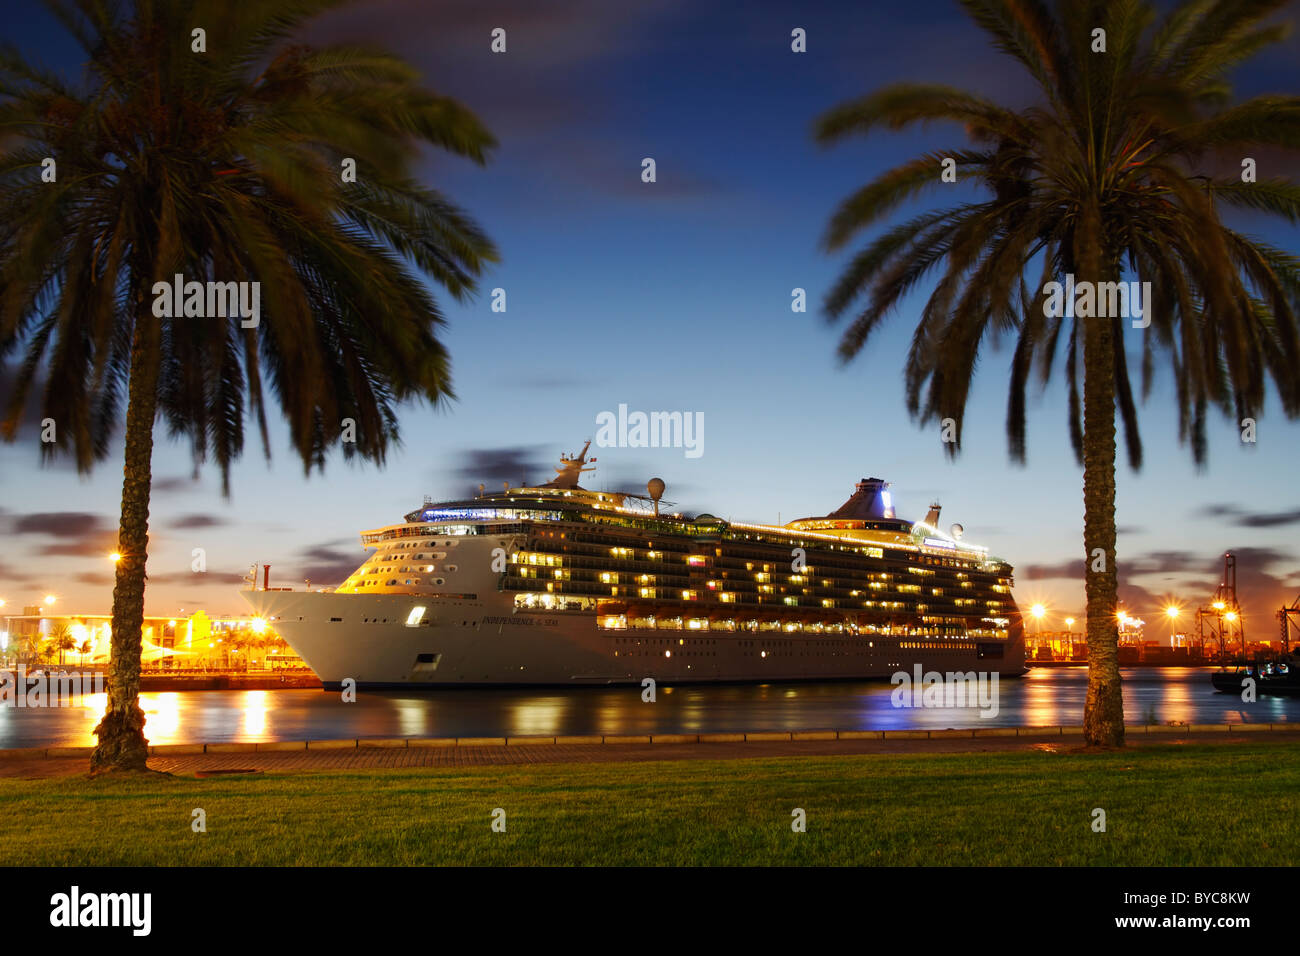 Independence of the Seas cruise ship visiting Las Palmas, Gran Canaria, Canary Islands, Spain - Stock Image